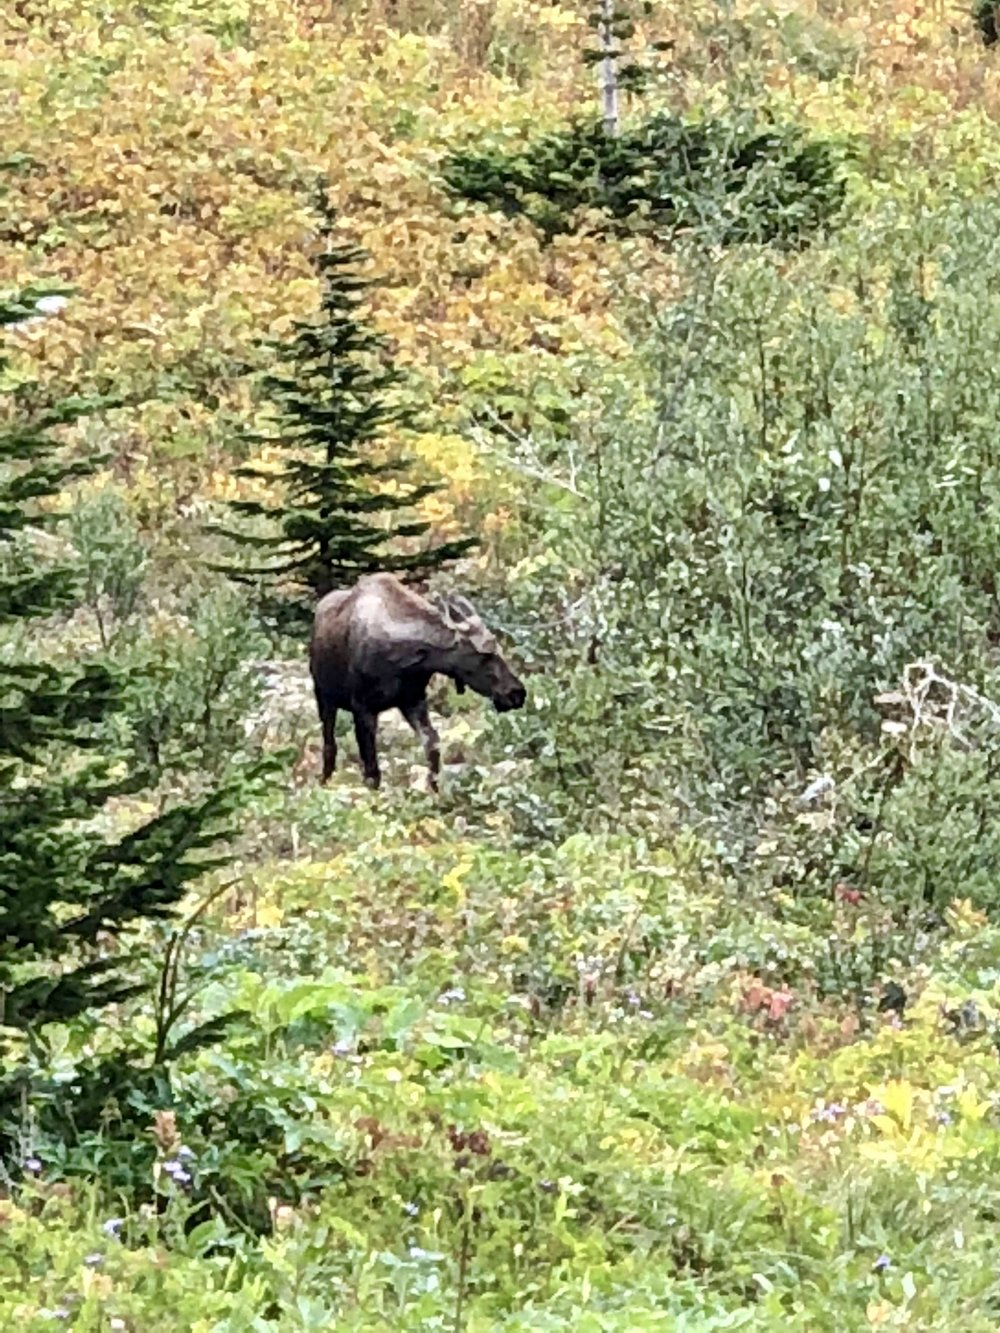 This looks like a painting, but it's not. My sister-in-law shot this moose from a looong distance. With her camera, of course.